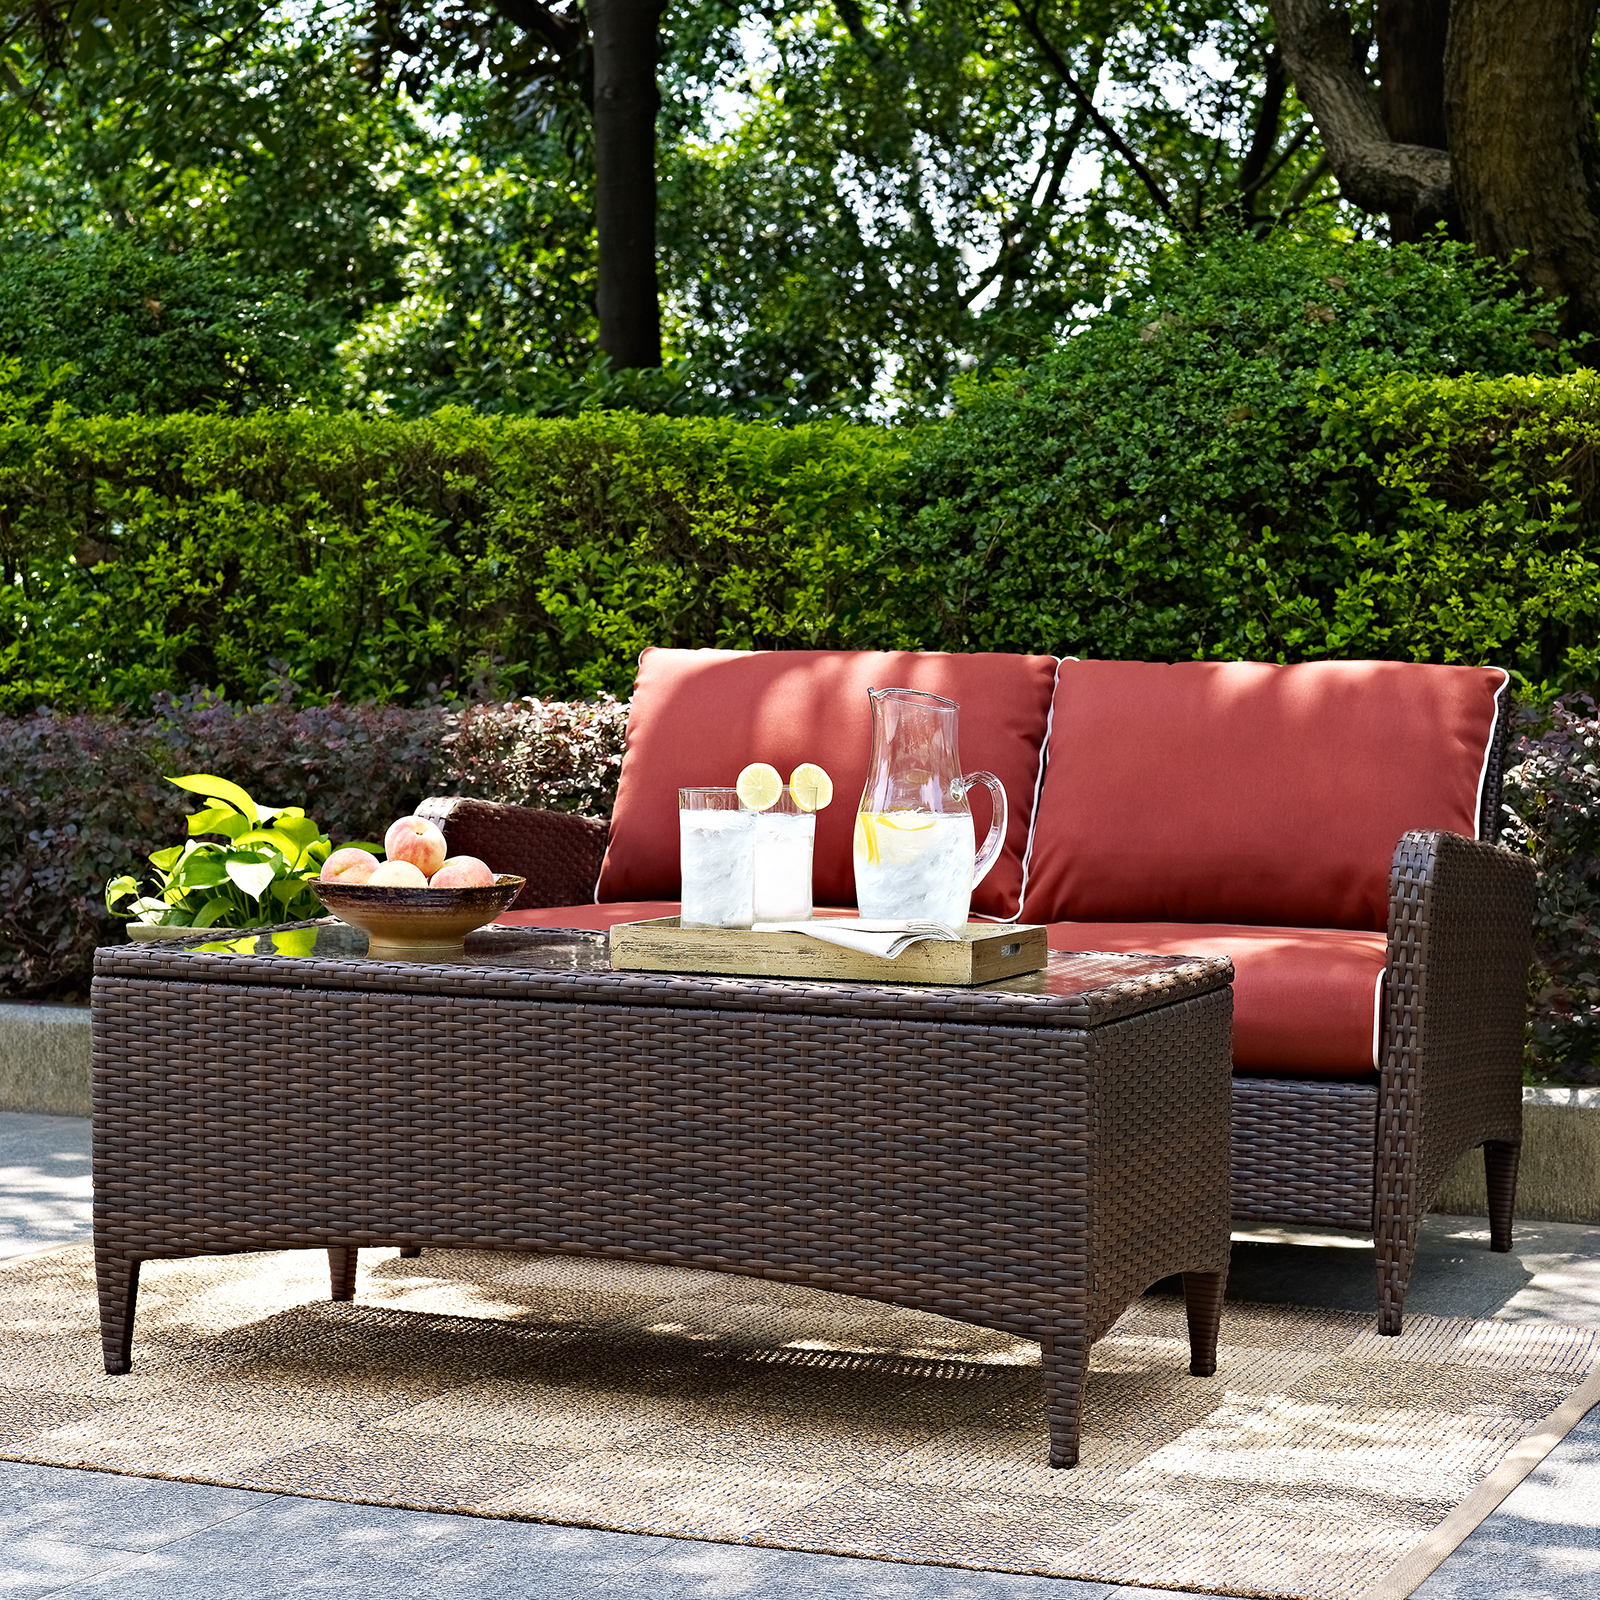 camari loveseat loveseats with cushion outdoor homesullivan p arm square charcoal wicker acclsg gray